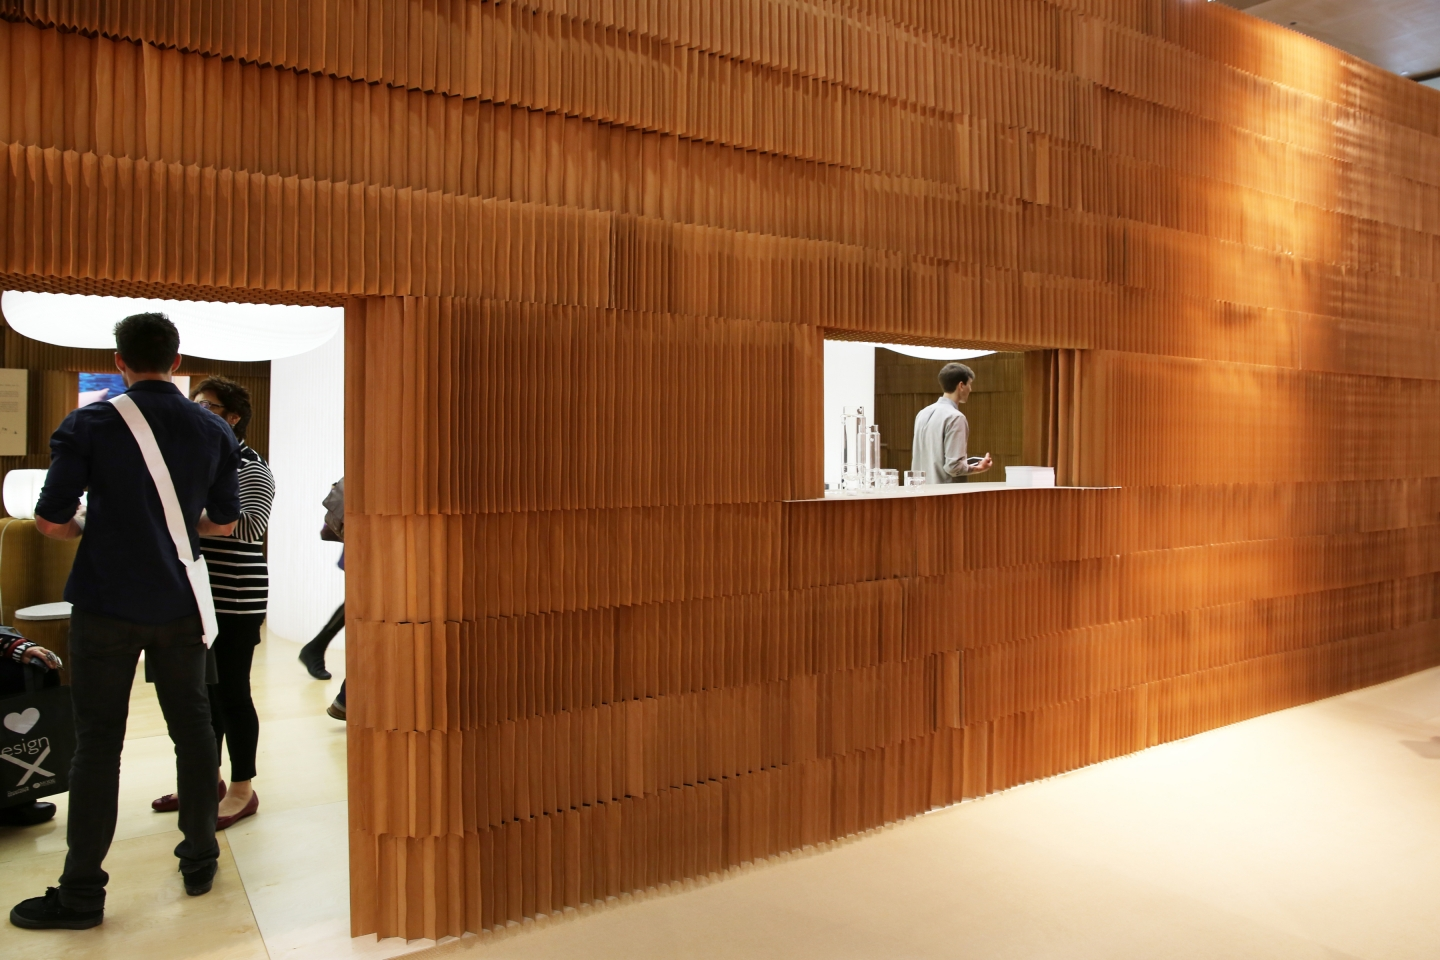 molo's installation at ICFF 2013 was made from softblocks that were connected and stacked to reach 15' high.